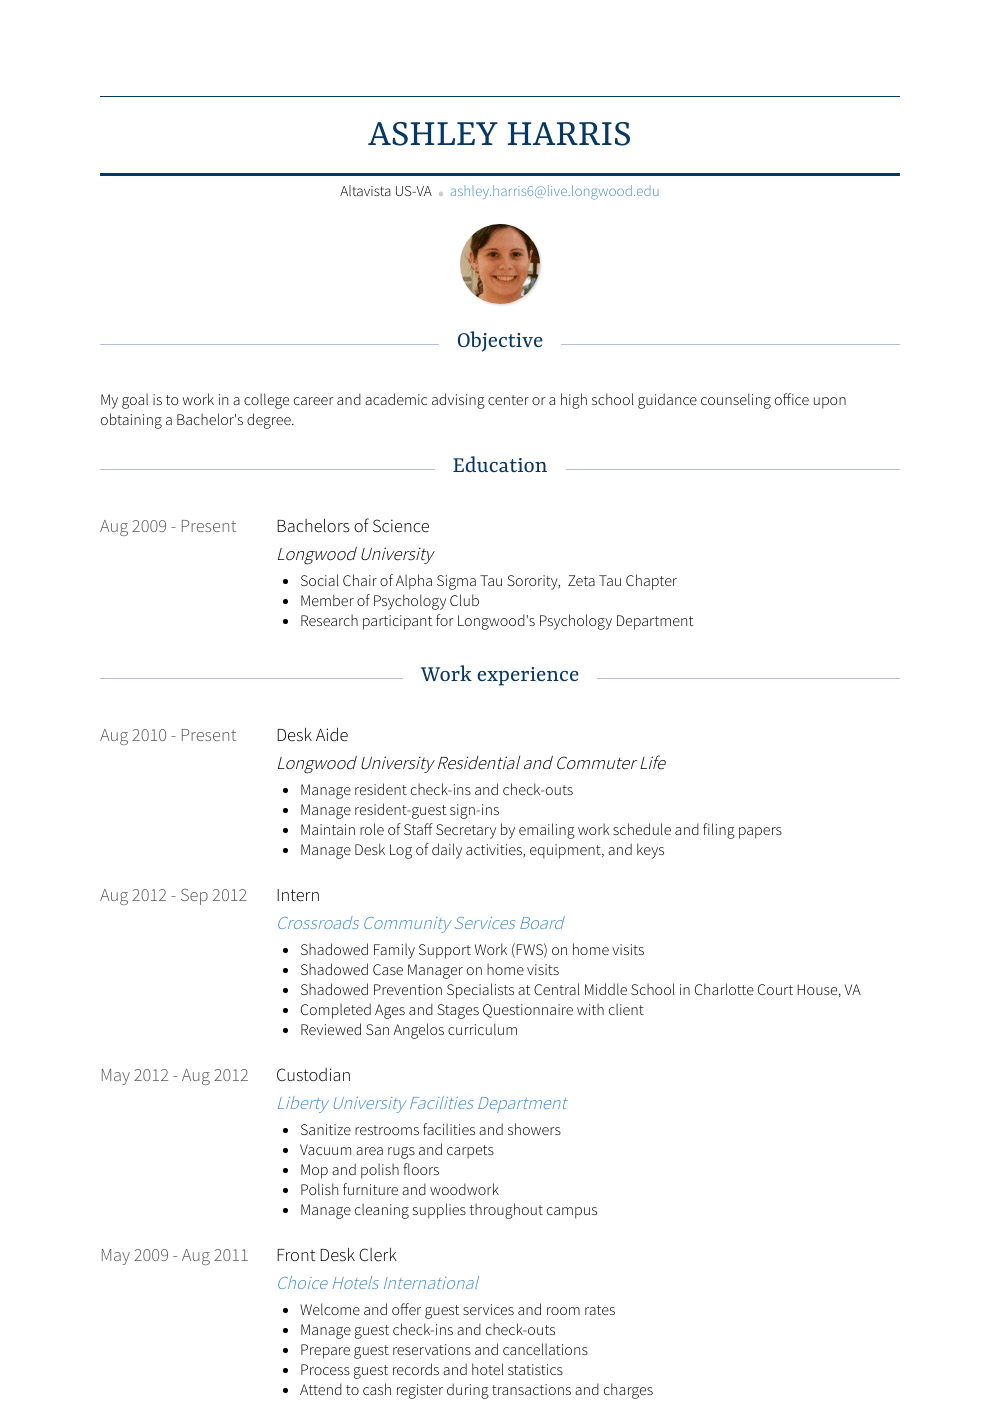 Desk Aide Resume Sample and Template